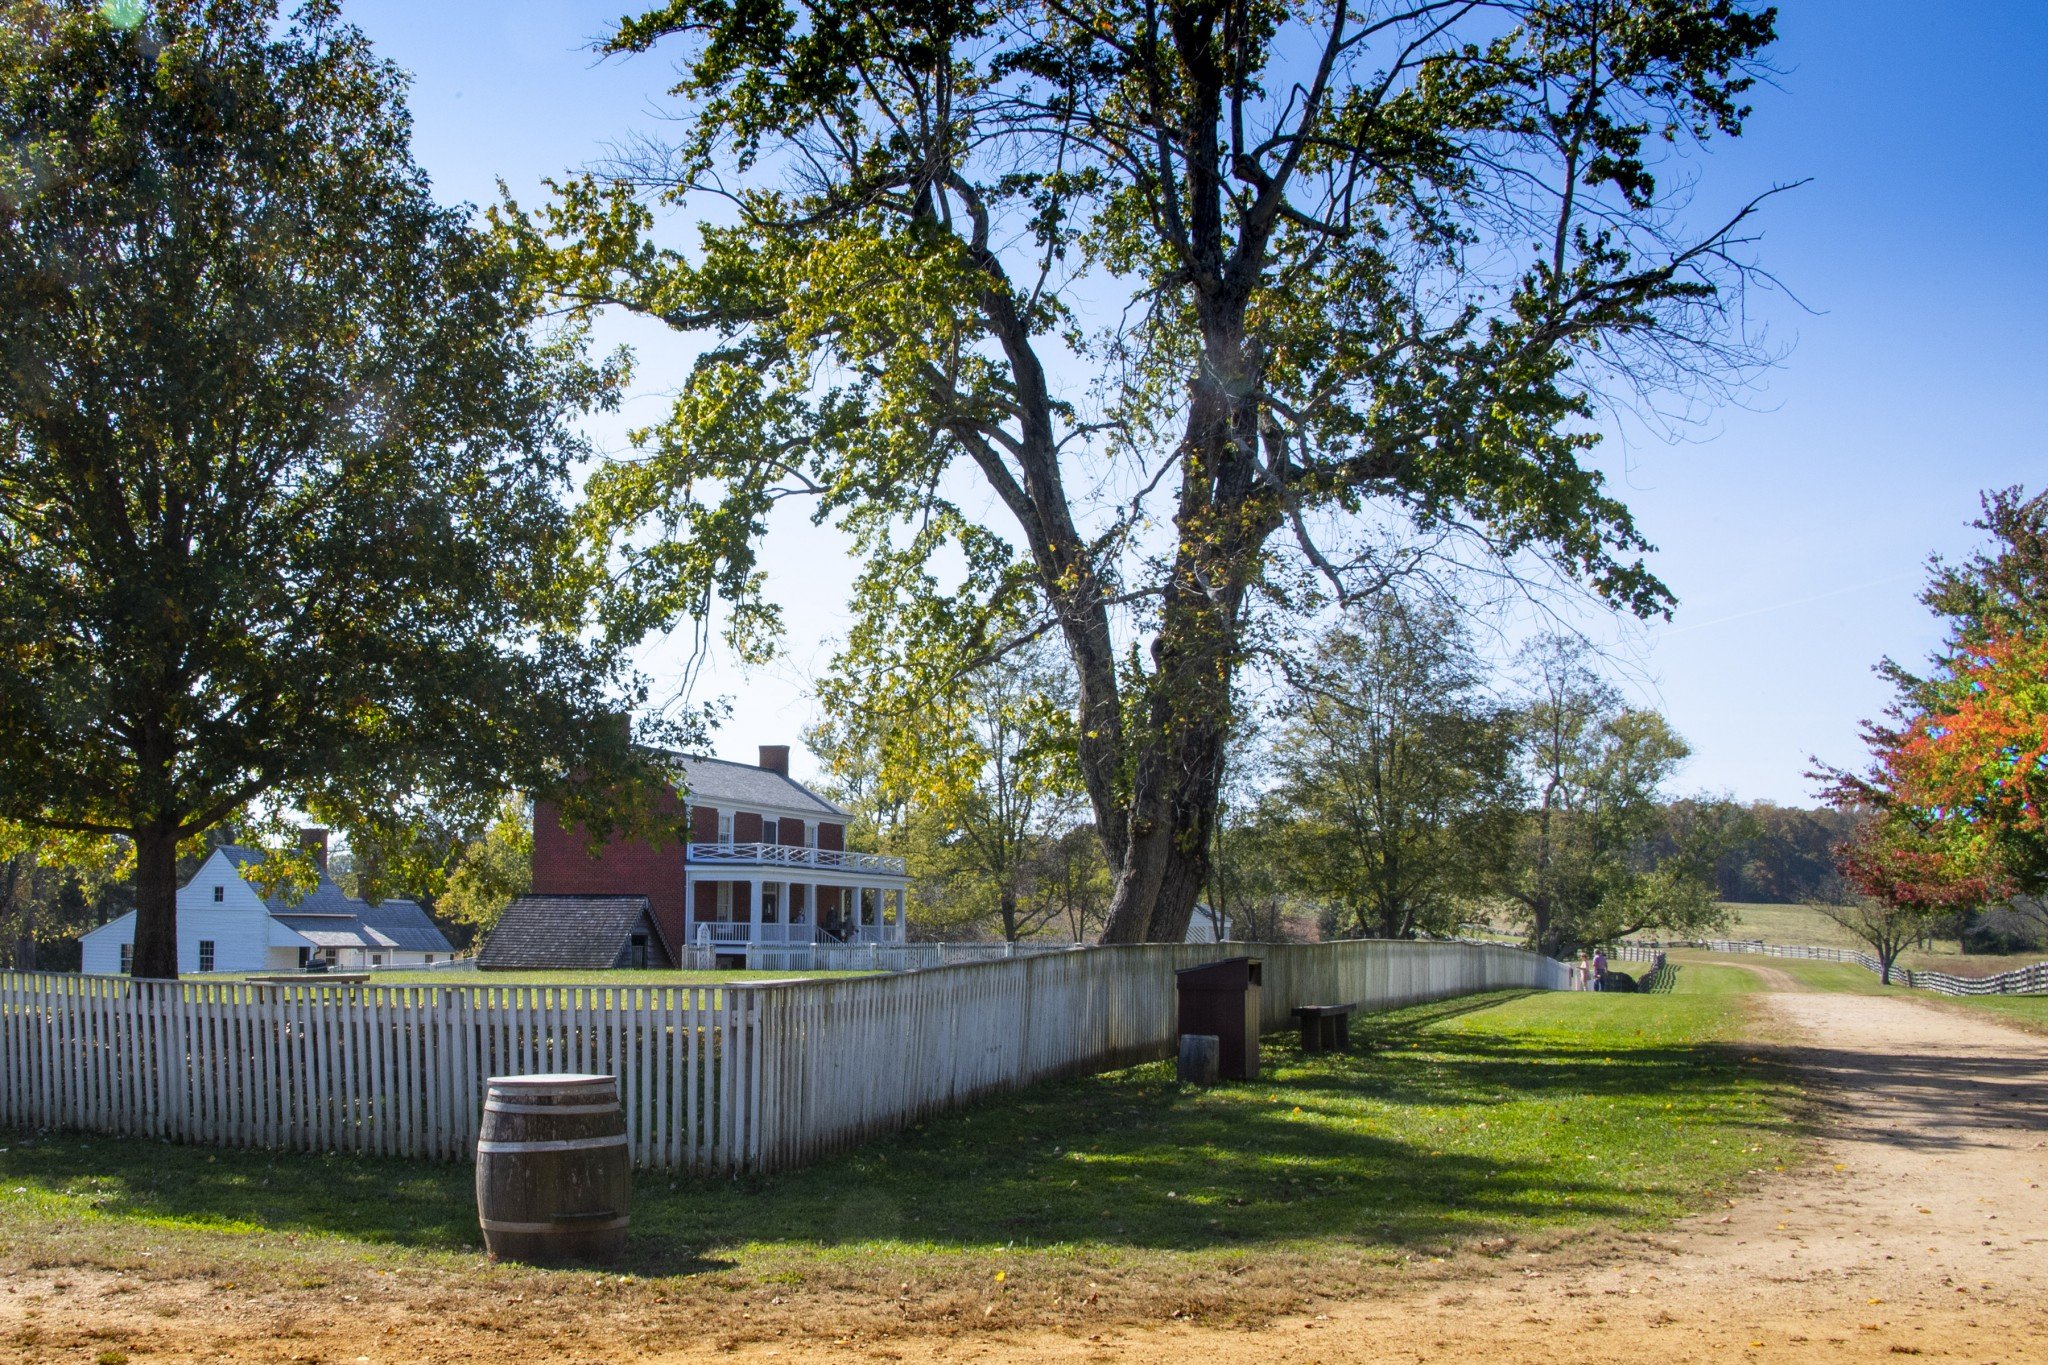 Among the many Civil War sites preserved in the region is Appomattox Courthouse National Historic Park where a number of structures are preserved, most notably the McLean House where General Ulysses S. Grant and General Robert E. Lee signed the surrender terms for Lee's Army of Northern Virginia, effectively ending the Civil War. (Photo by Art Weber)